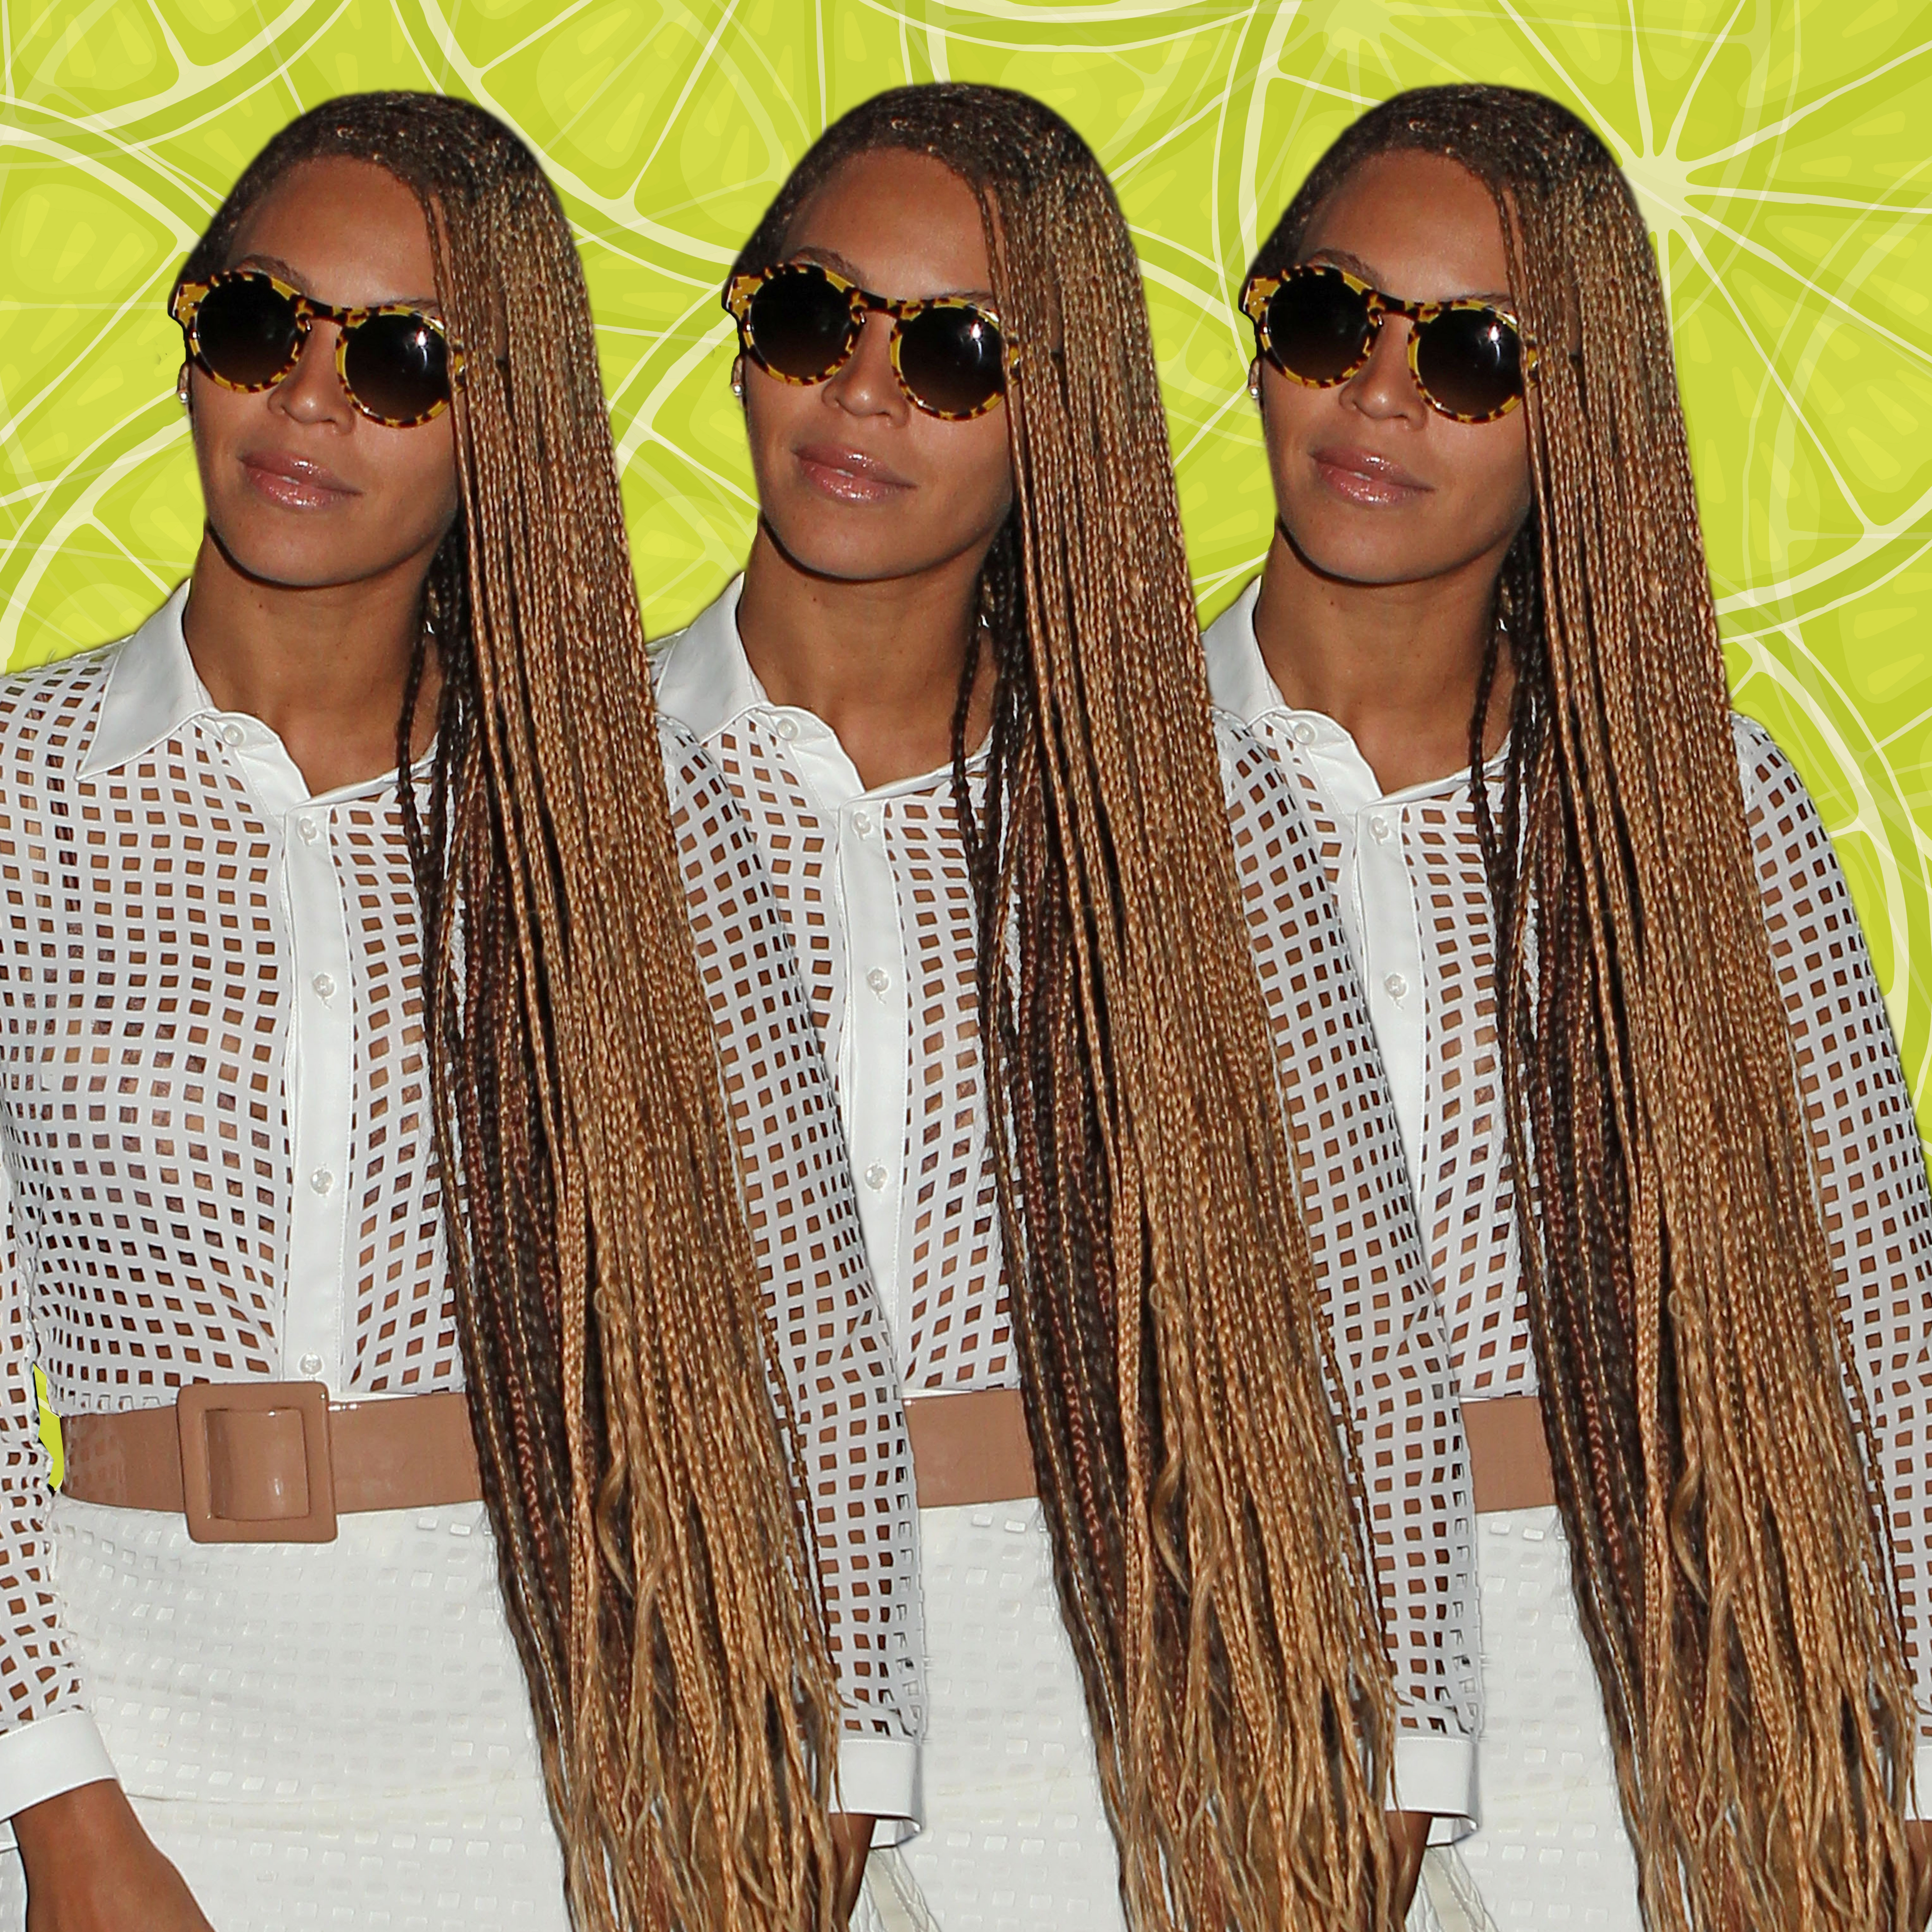 Beyonce Braid Hairstyles – Essence In 2017 Braided Hairstyles For Vacation (View 14 of 15)